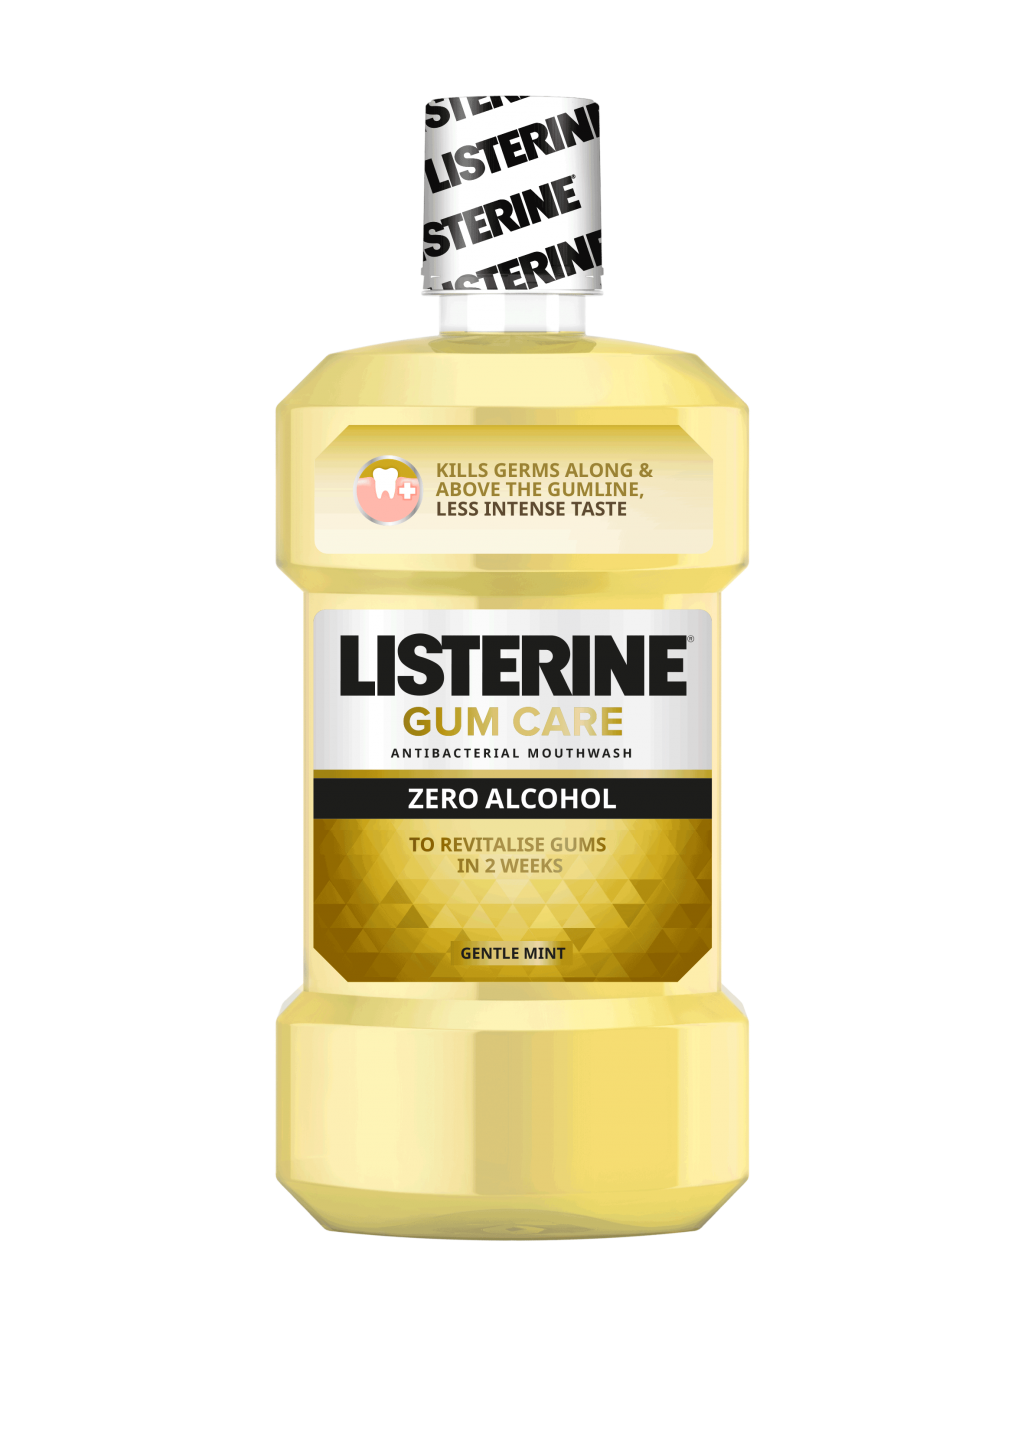 new-listerine-gumcare-clean.png